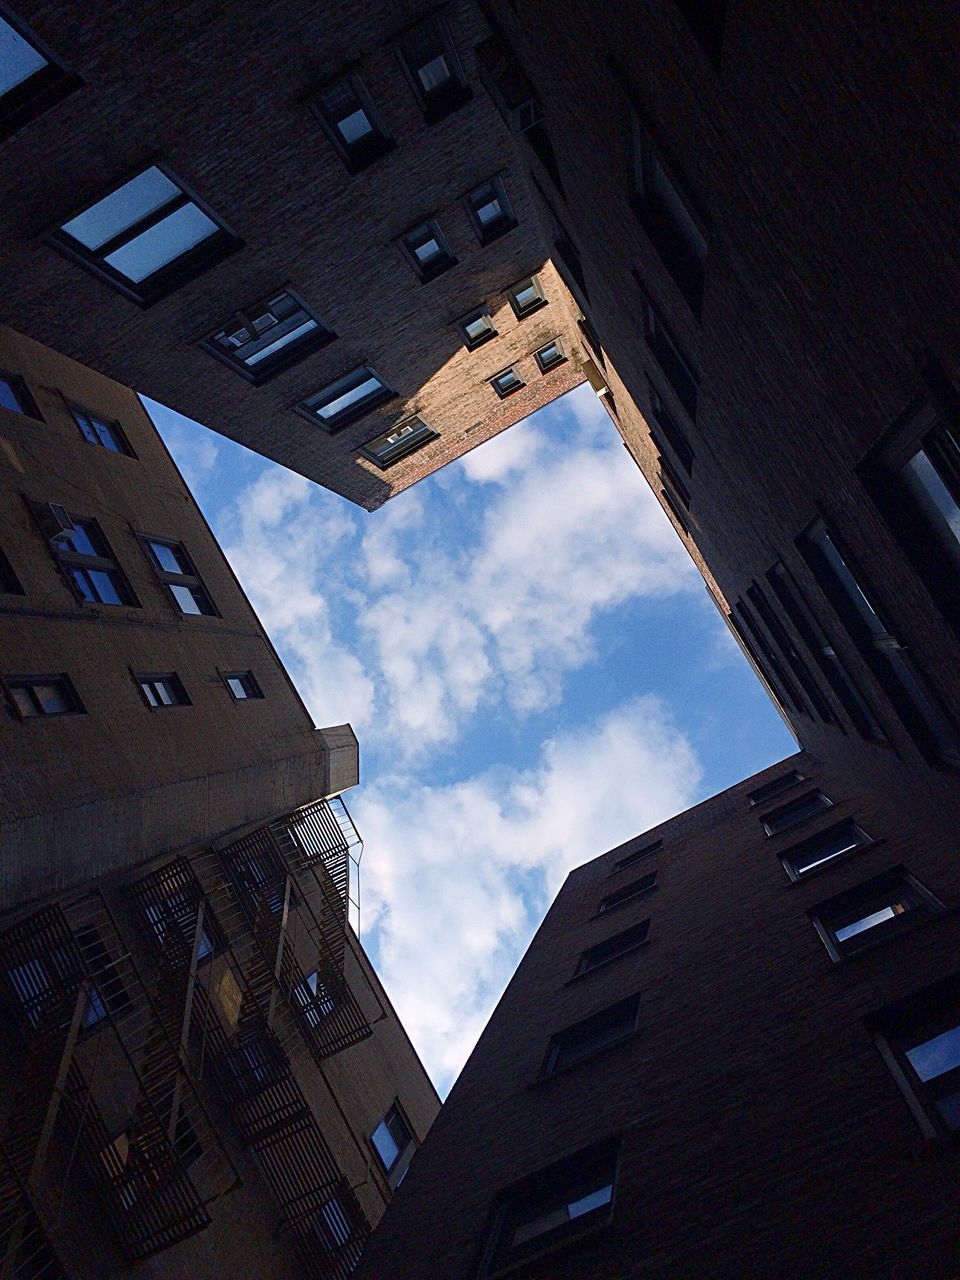 architecture, building exterior, built structure, low angle view, sky, window, no people, day, cloud - sky, outdoors, city